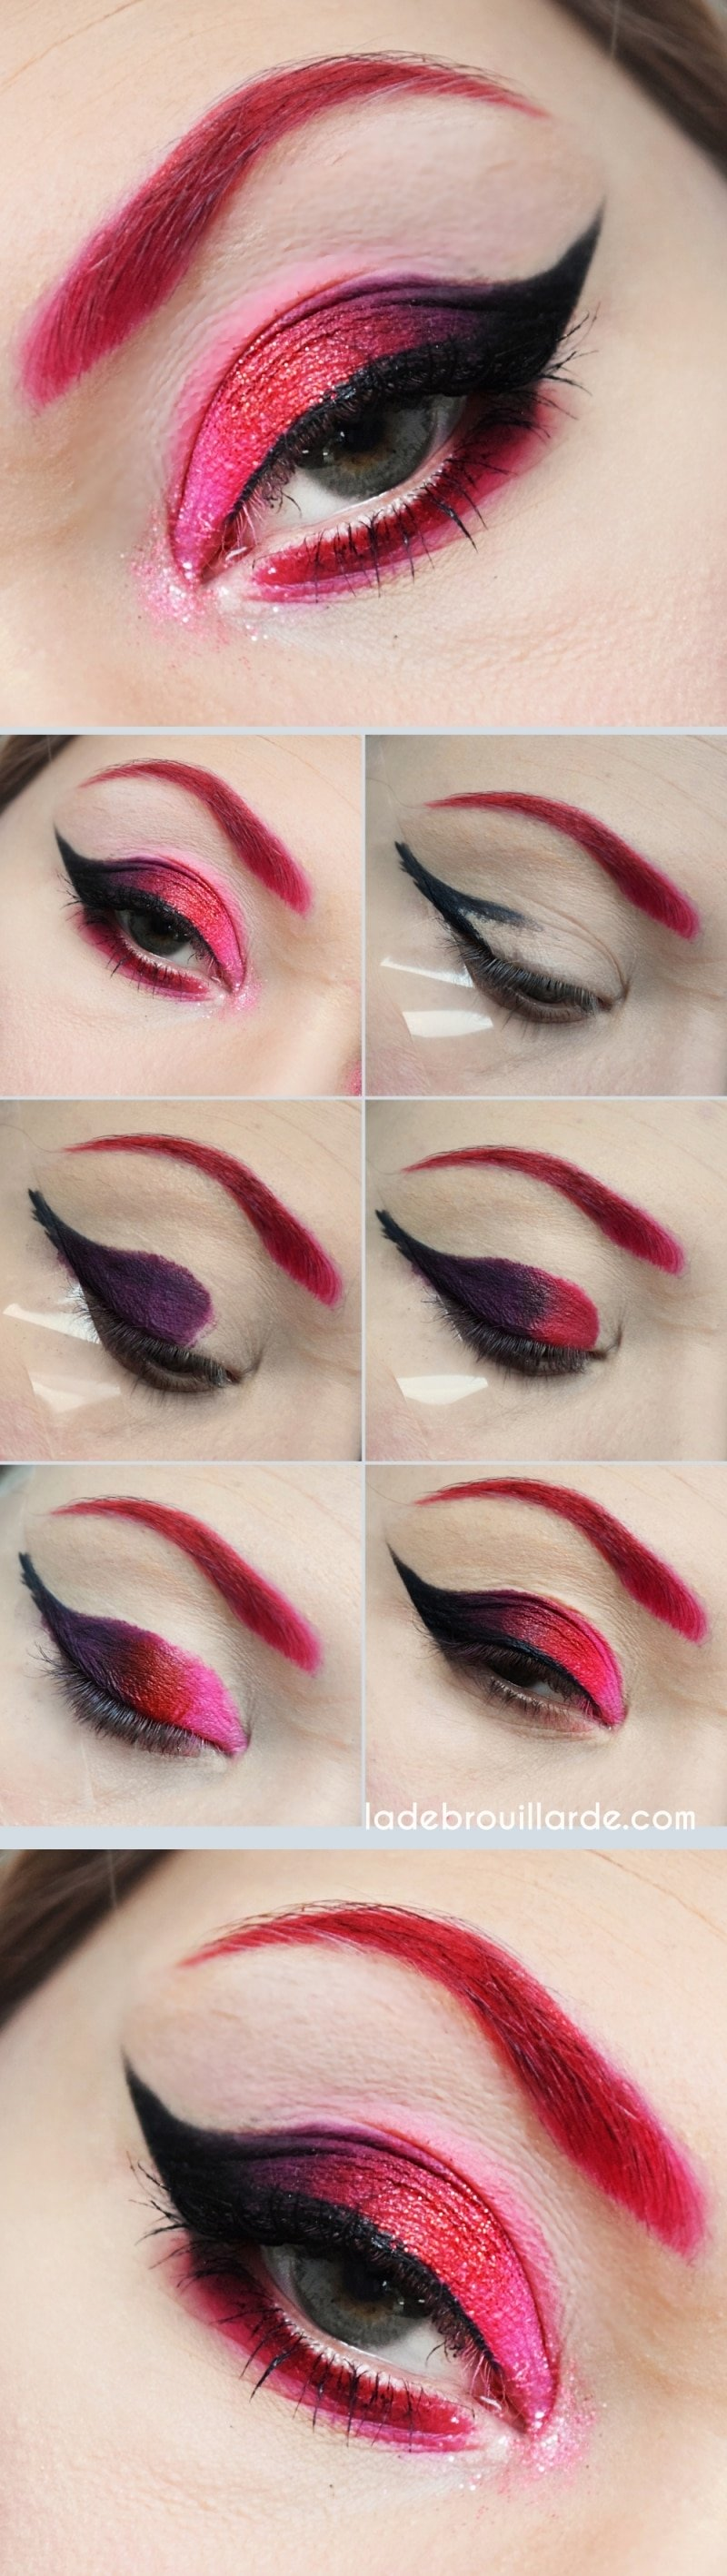 tutoriel maquillage rouge à lèvre-down